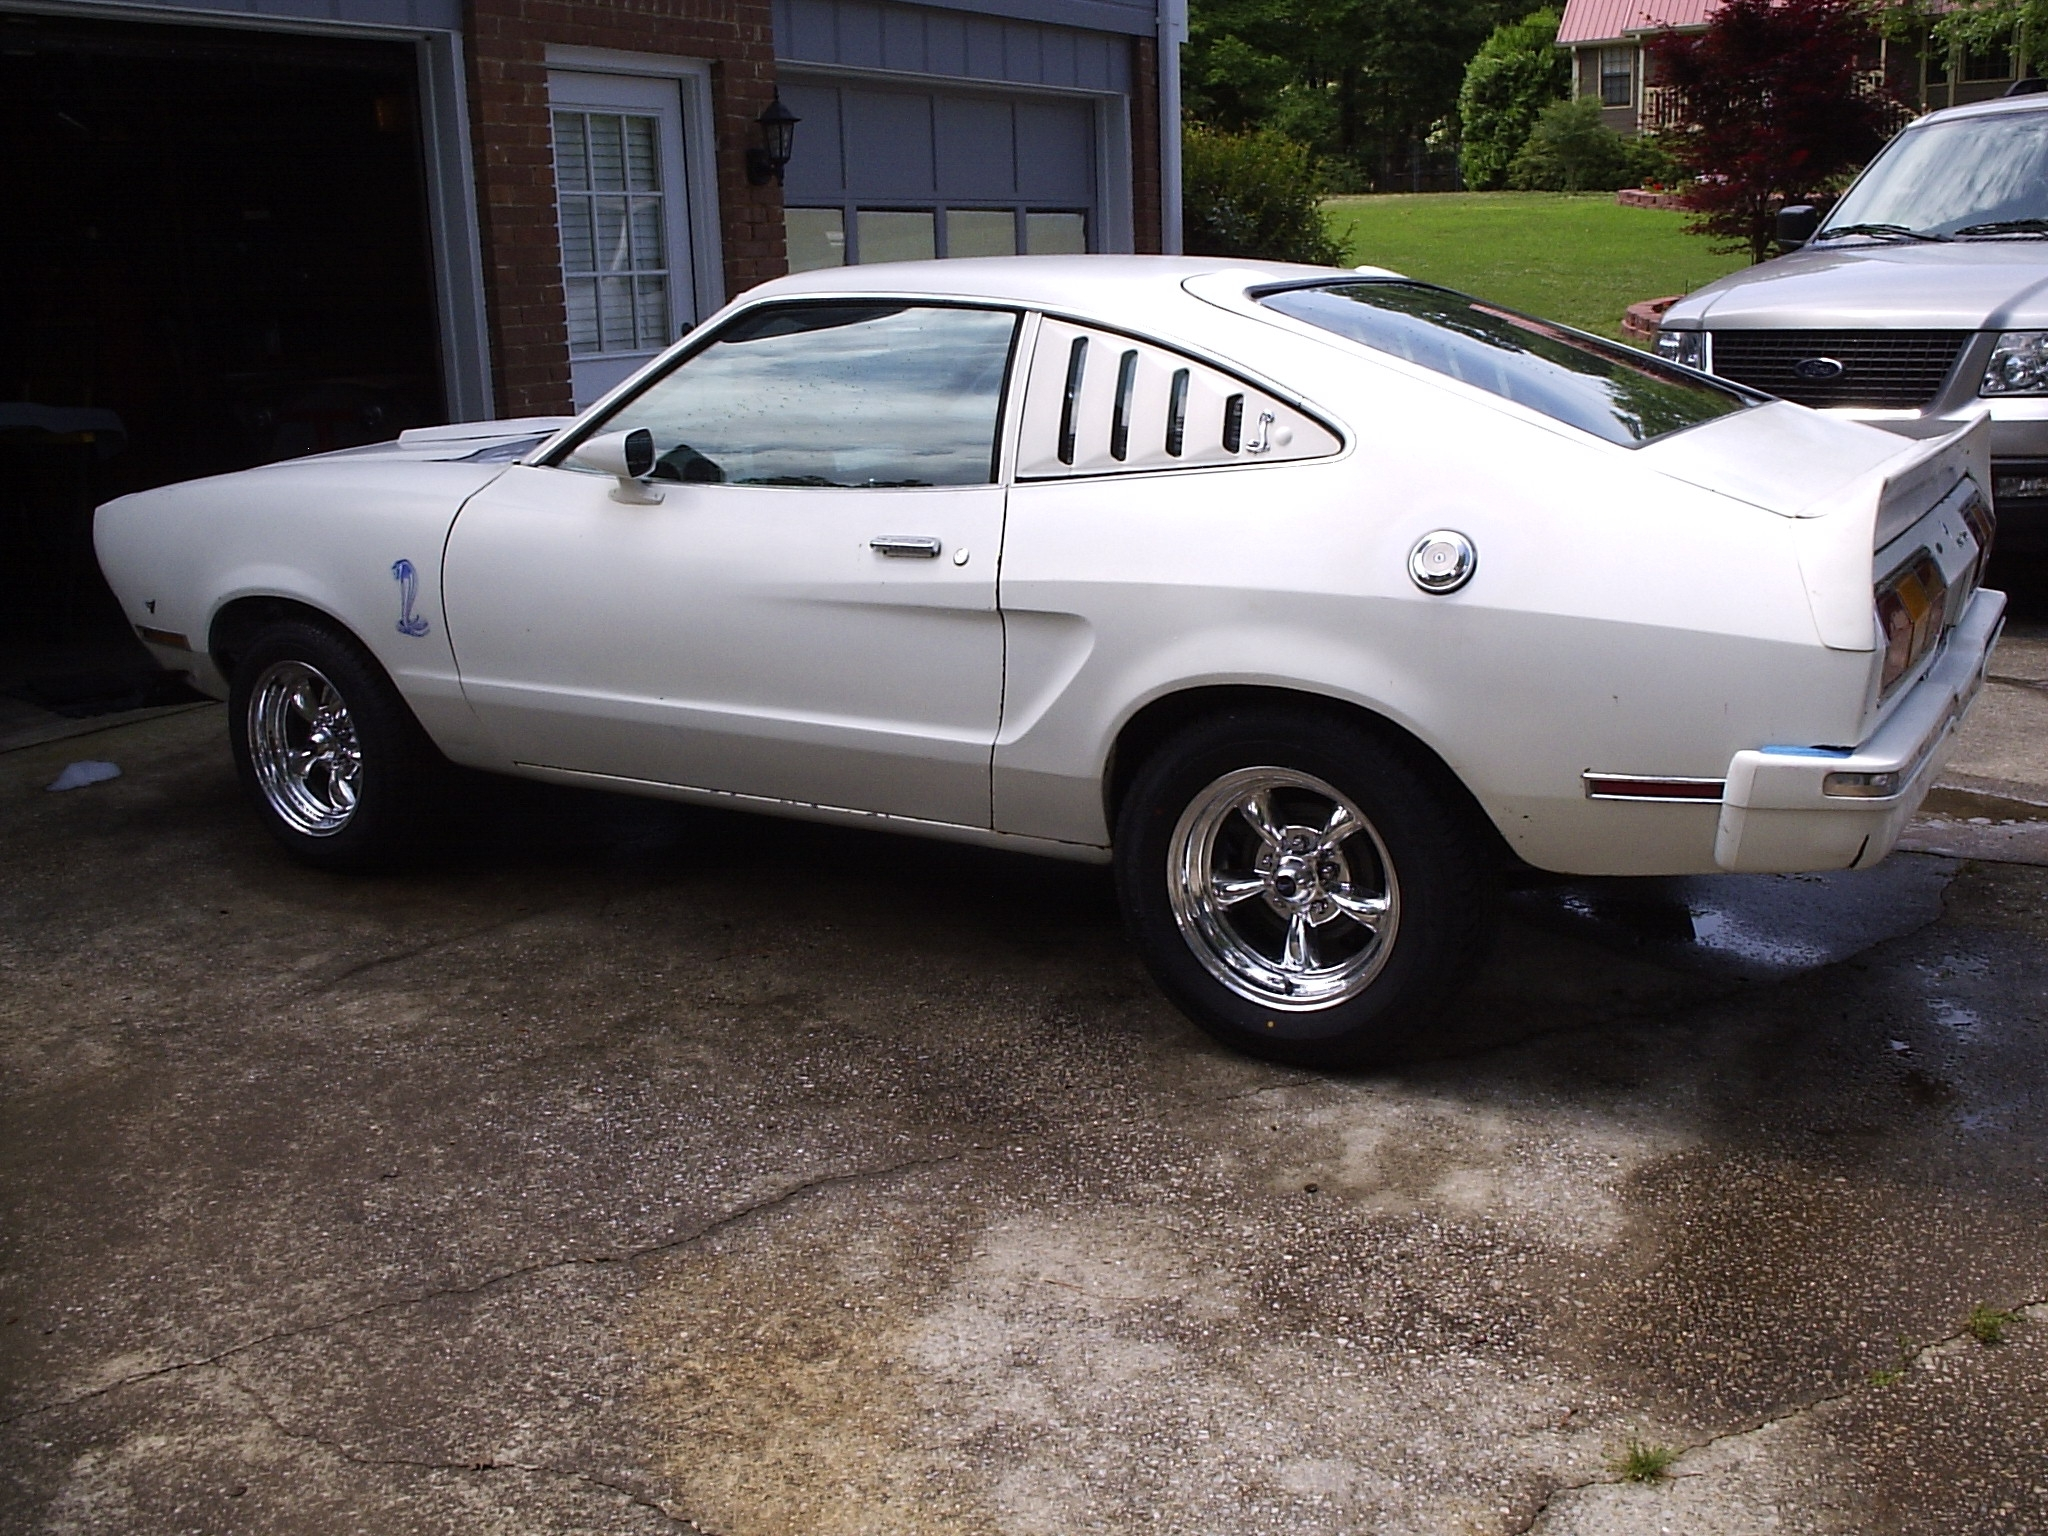 welder4956 1976 Ford Mustang II Specs s Modification Info at